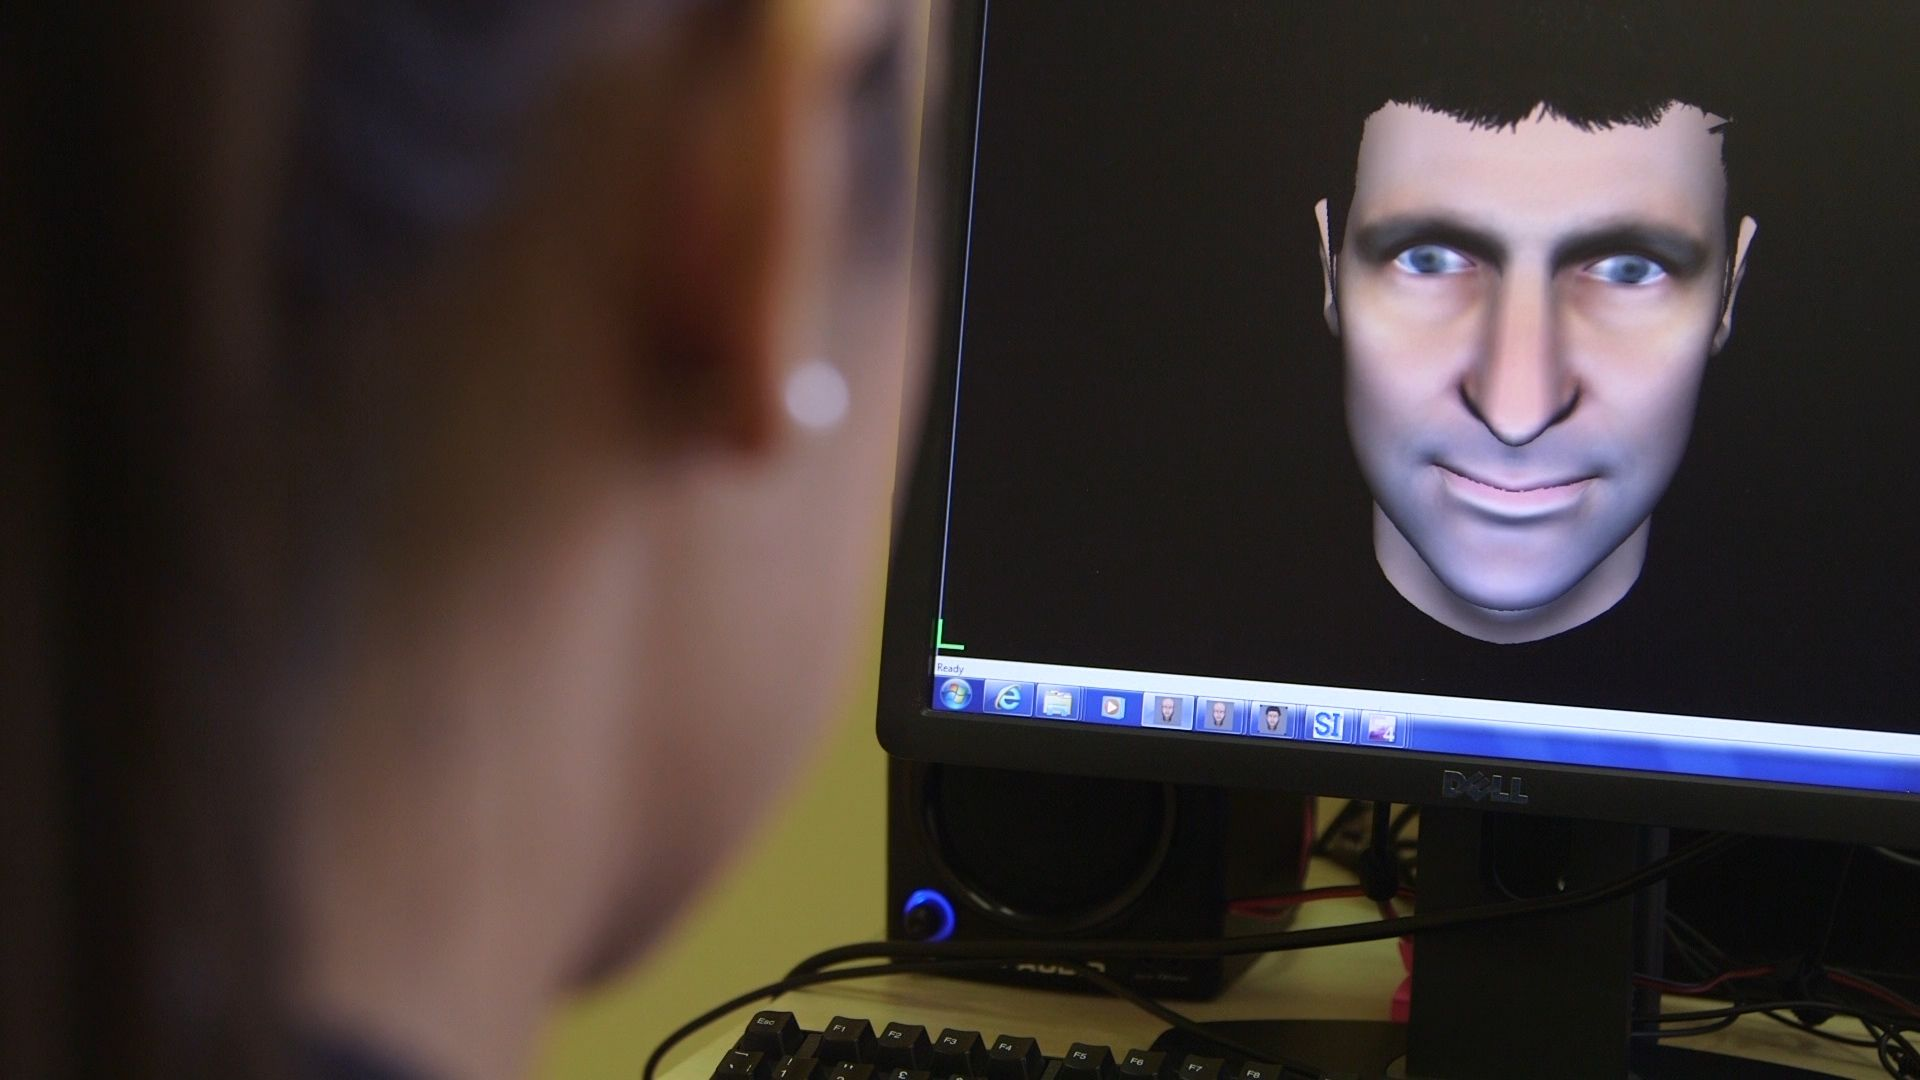 Could angry avatars help people deal with schizophrenia?